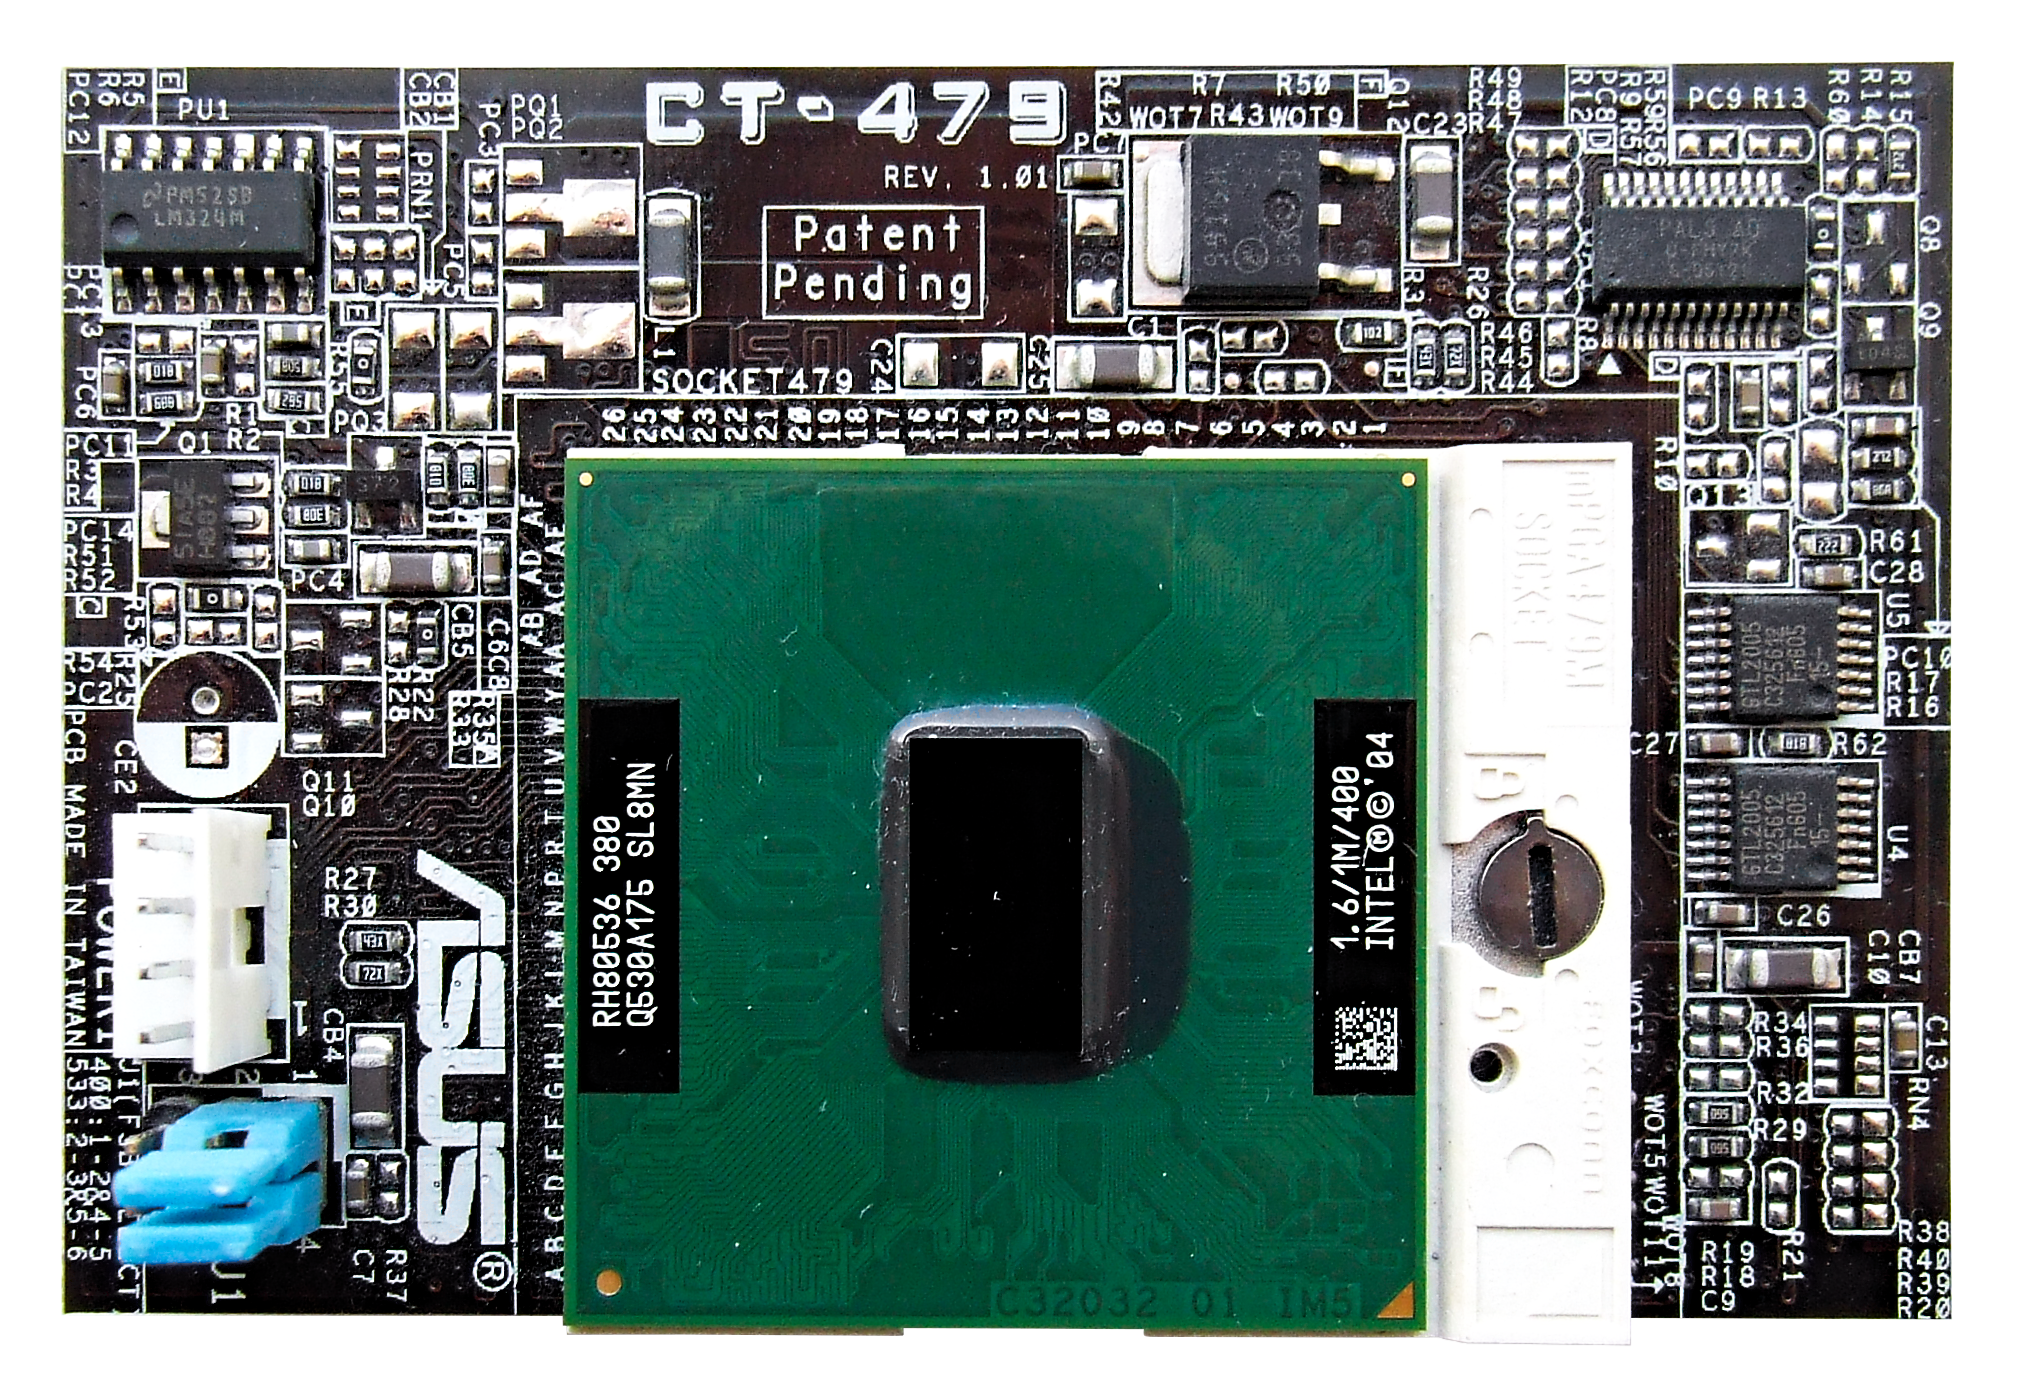 An Asus CT-479 adapter